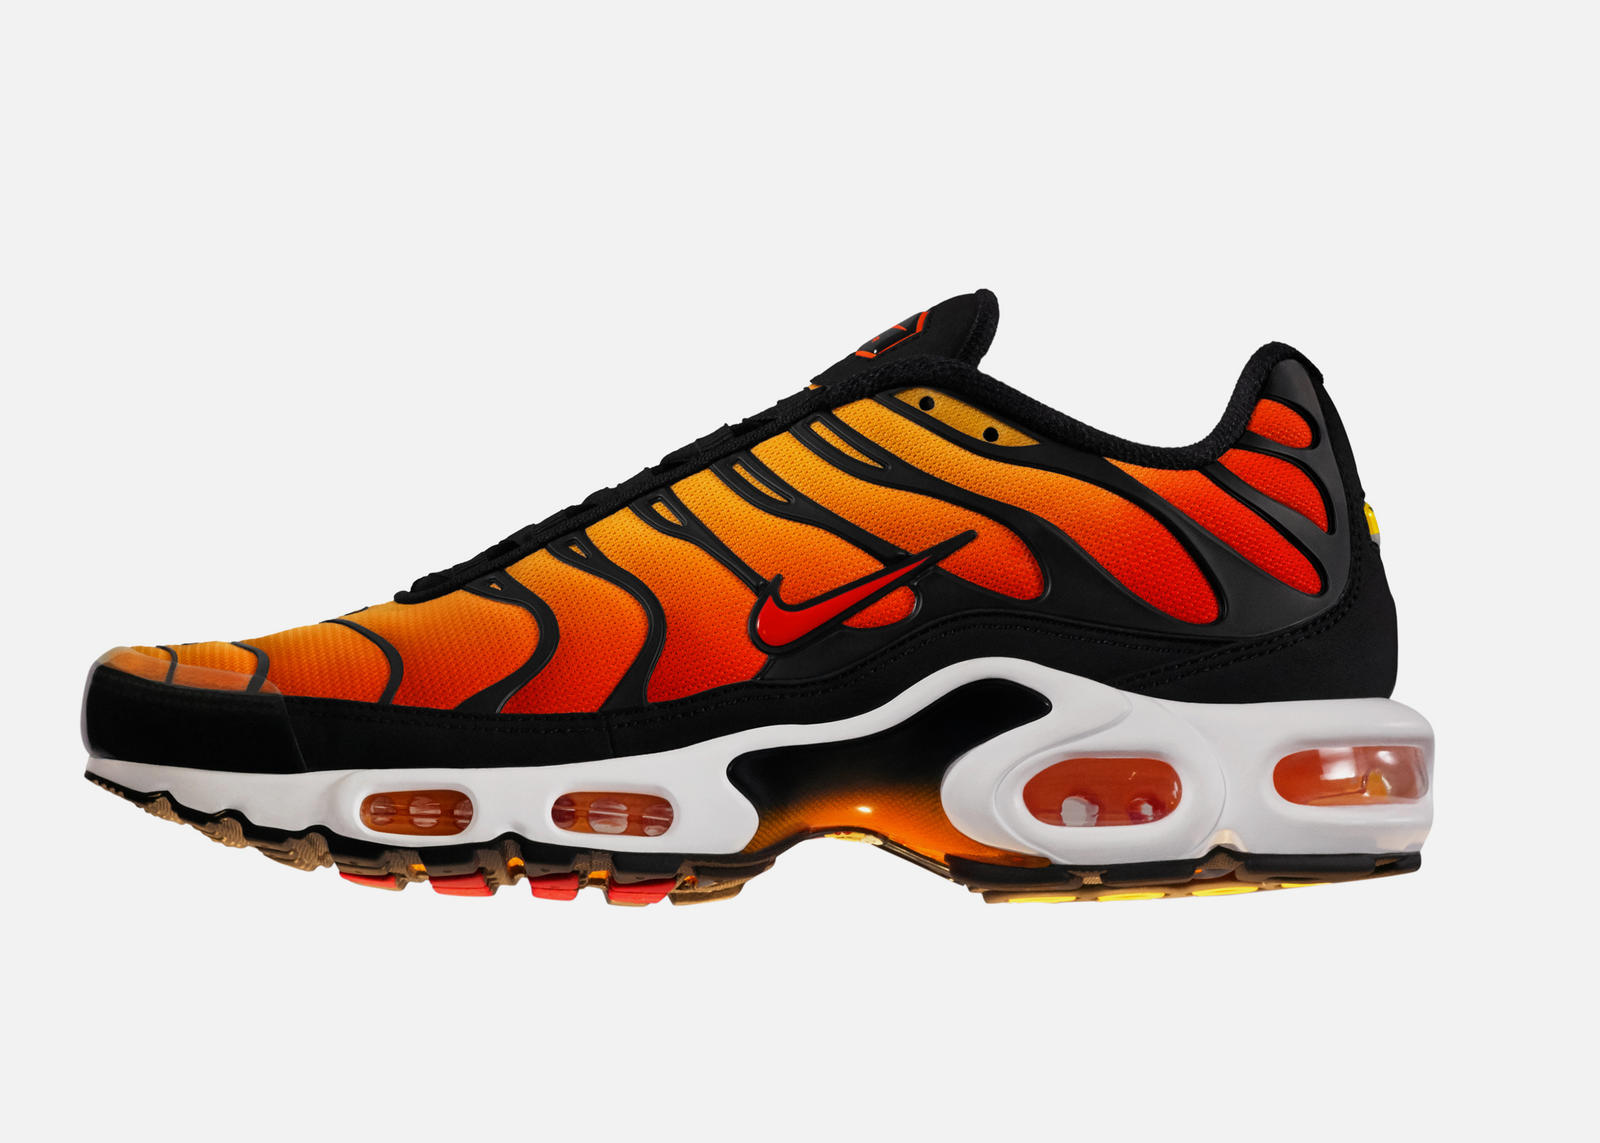 4ea07f40521 Nike Air Max Plus TN History - Nike News